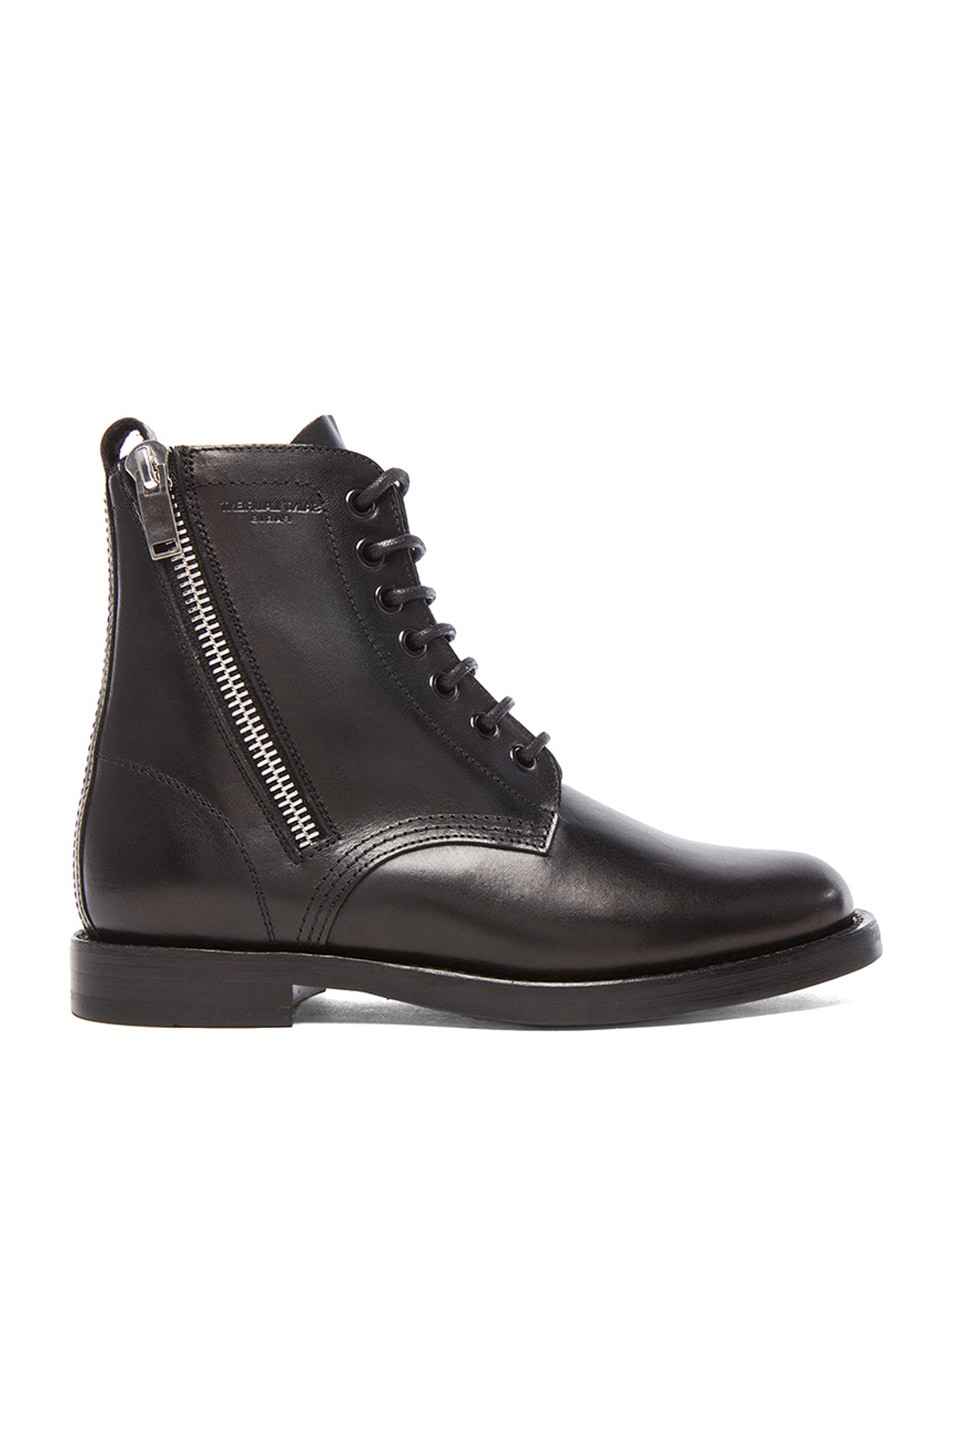 Image 1 of Saint Laurent Leather Ranger Zipper Combat Leather Boots in Black